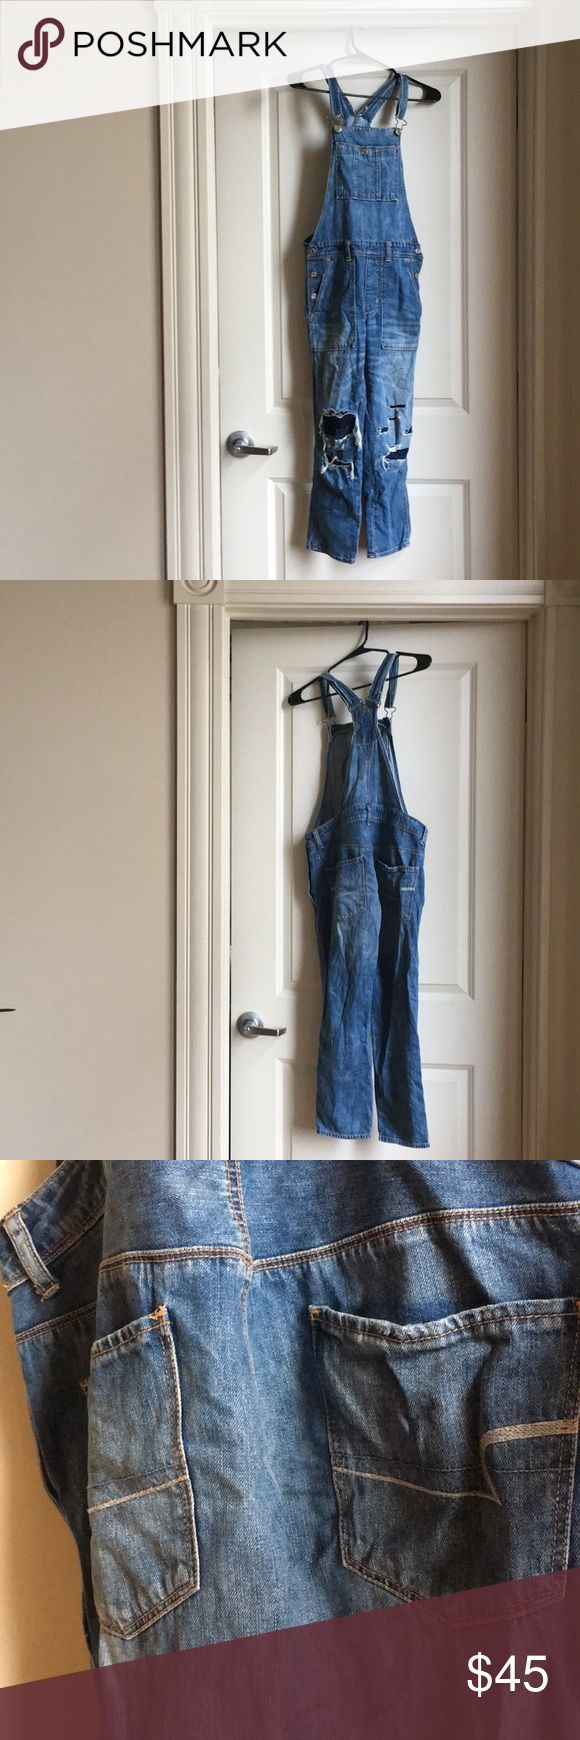 American Eagle distressed overalls Distressed patchy American Eagle overalls! Super cute denim and patches on knees American Eagle Outfitters Jeans Overalls